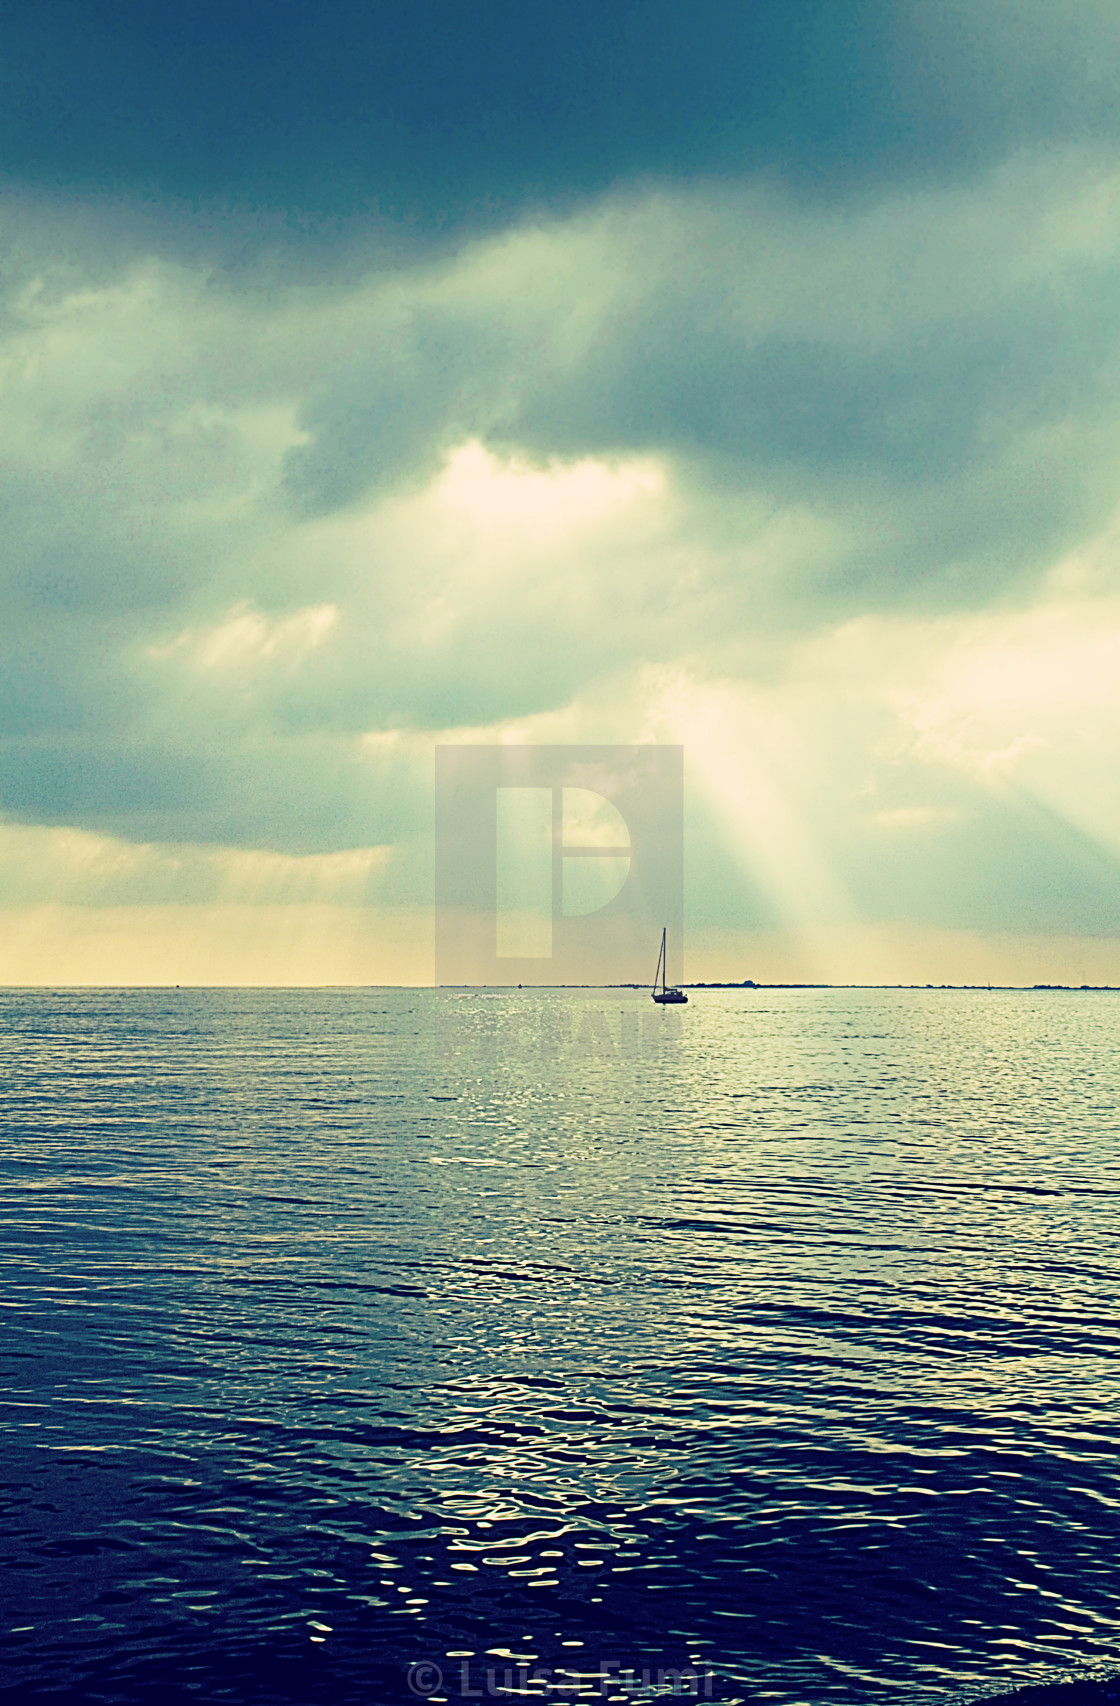 """Quiet after storm, sailboat with sun reflection on calm waters under a..."" stock image"